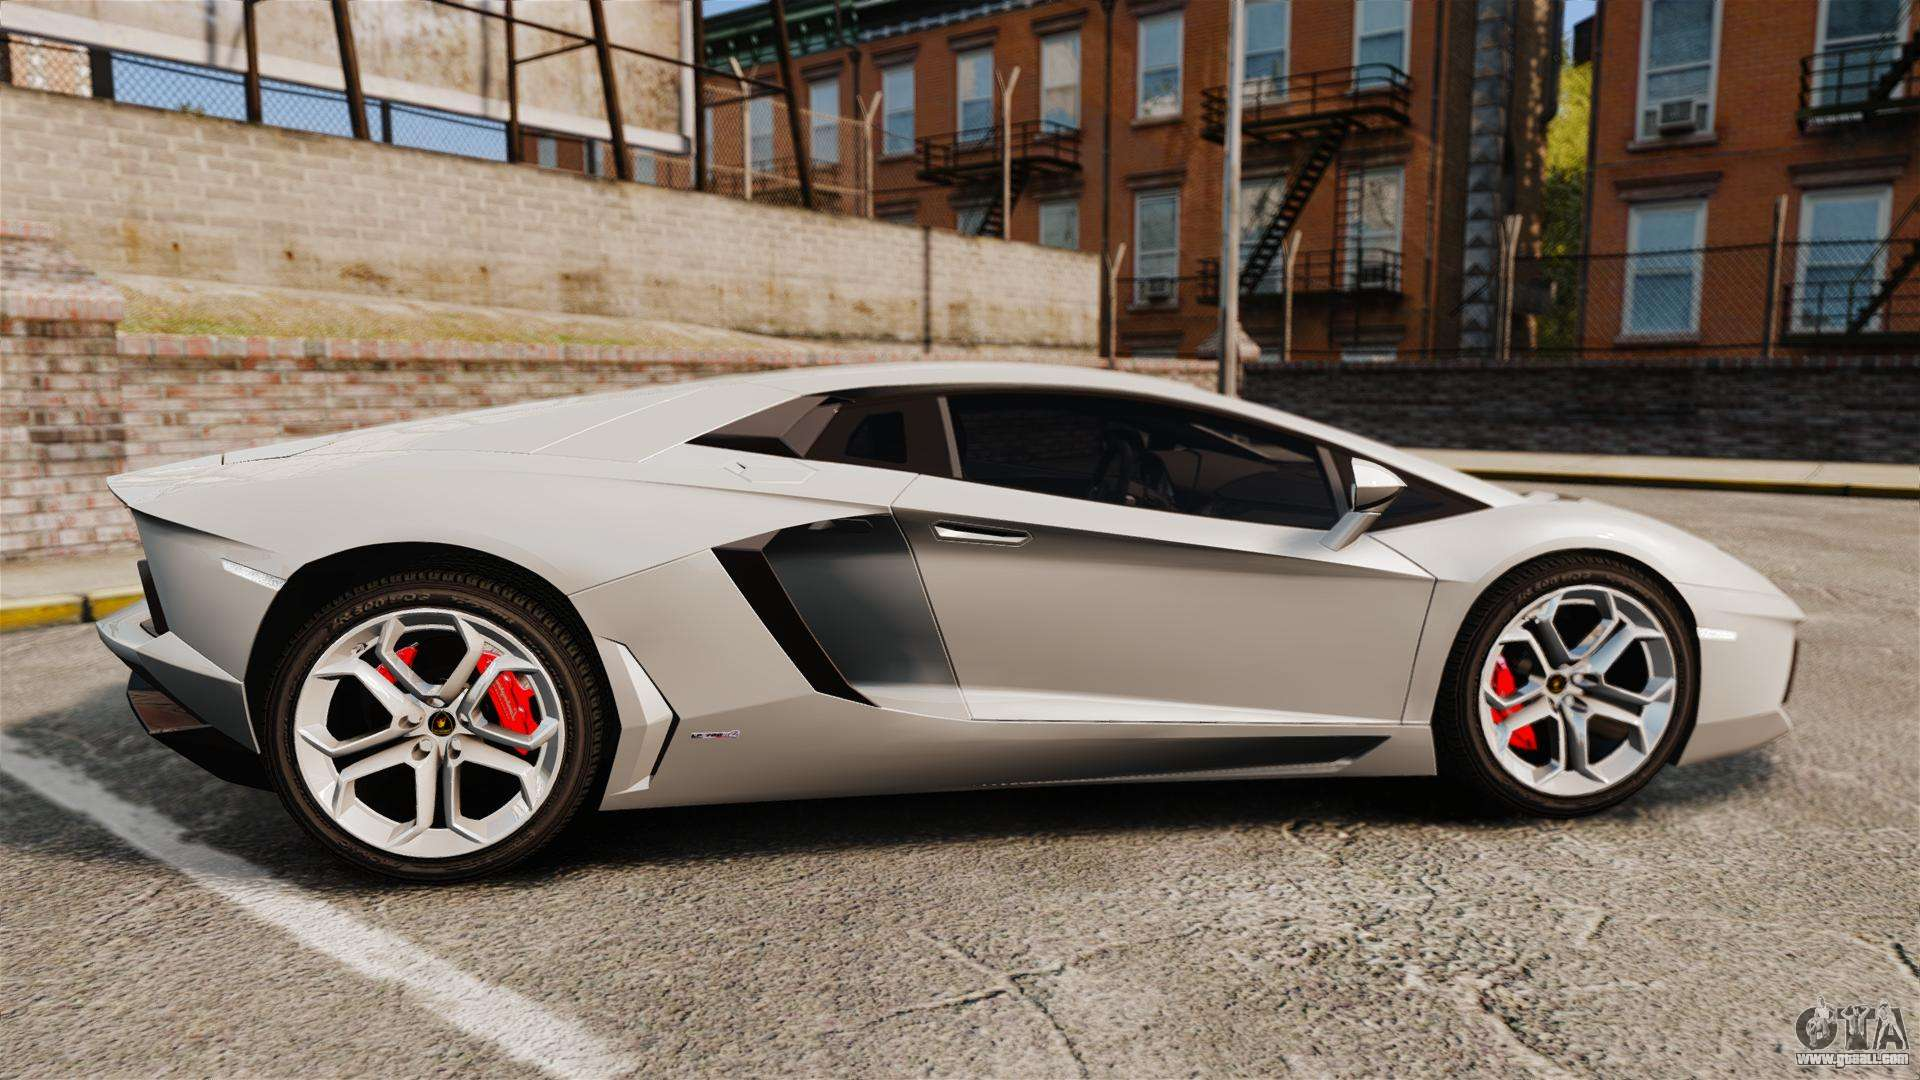 Lamborghini Aventador Lp700 4 2012 Epm V1 1 For Gta 4